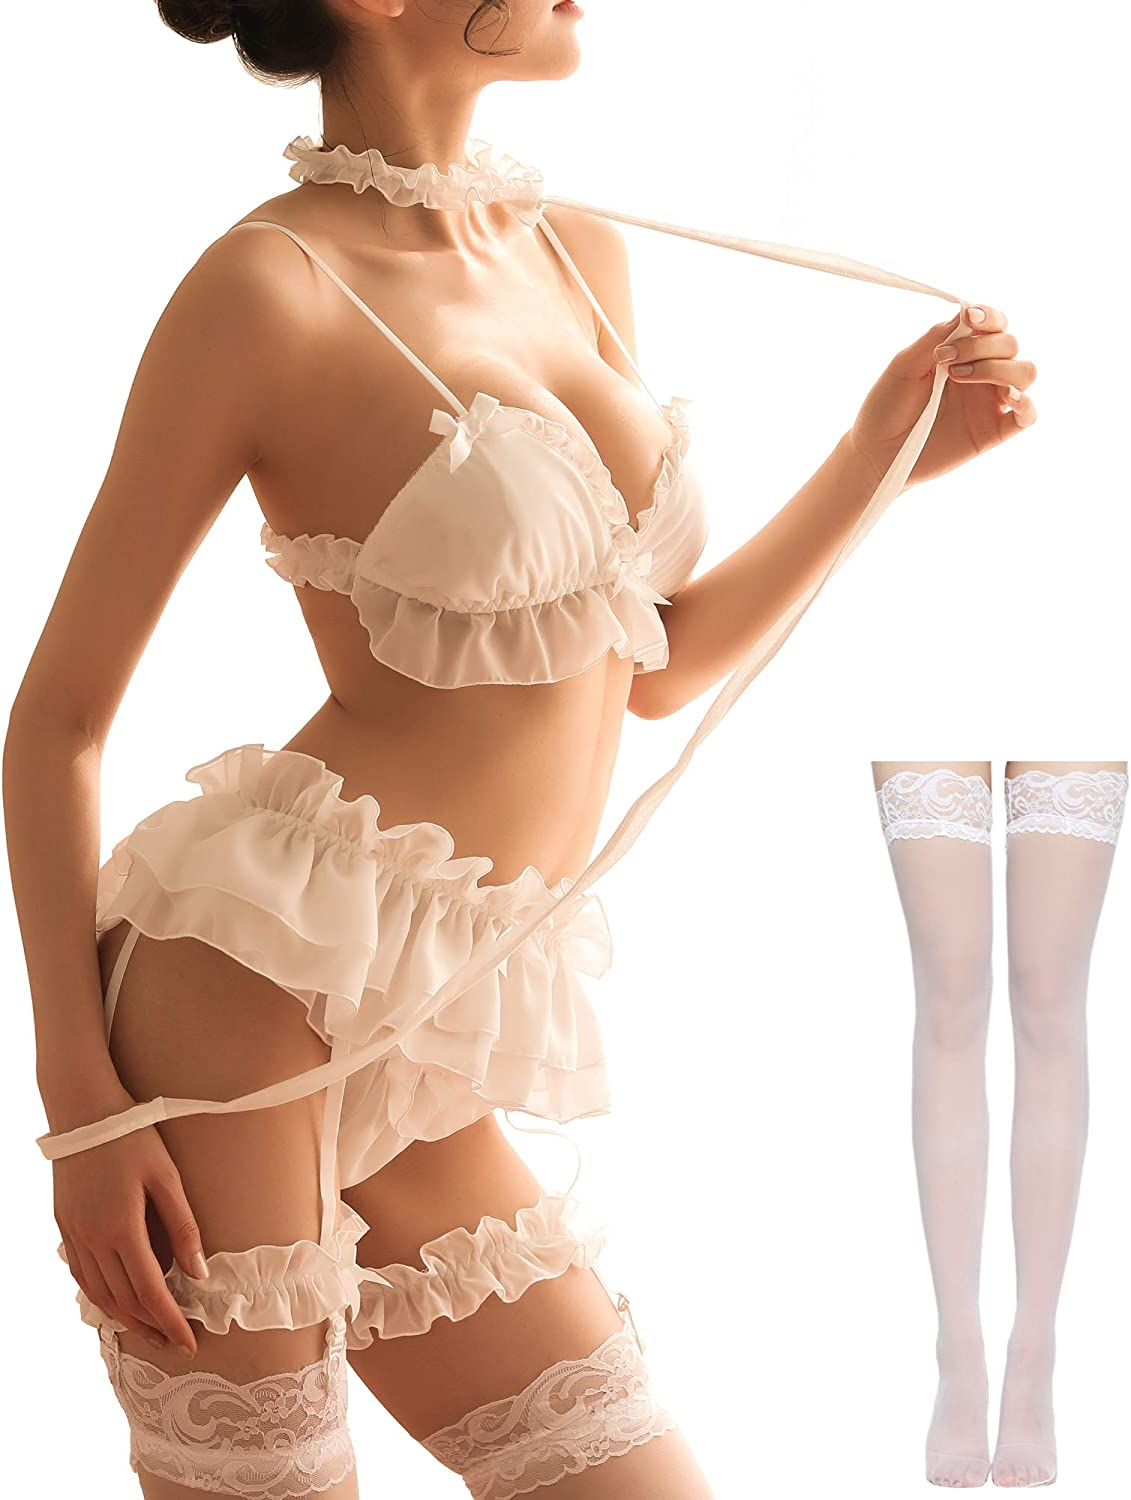 Women's Sexy Cosplay Lingerie Set Doll Outfit low-pricing Teddy Max 68% OFF Baby Ruffle